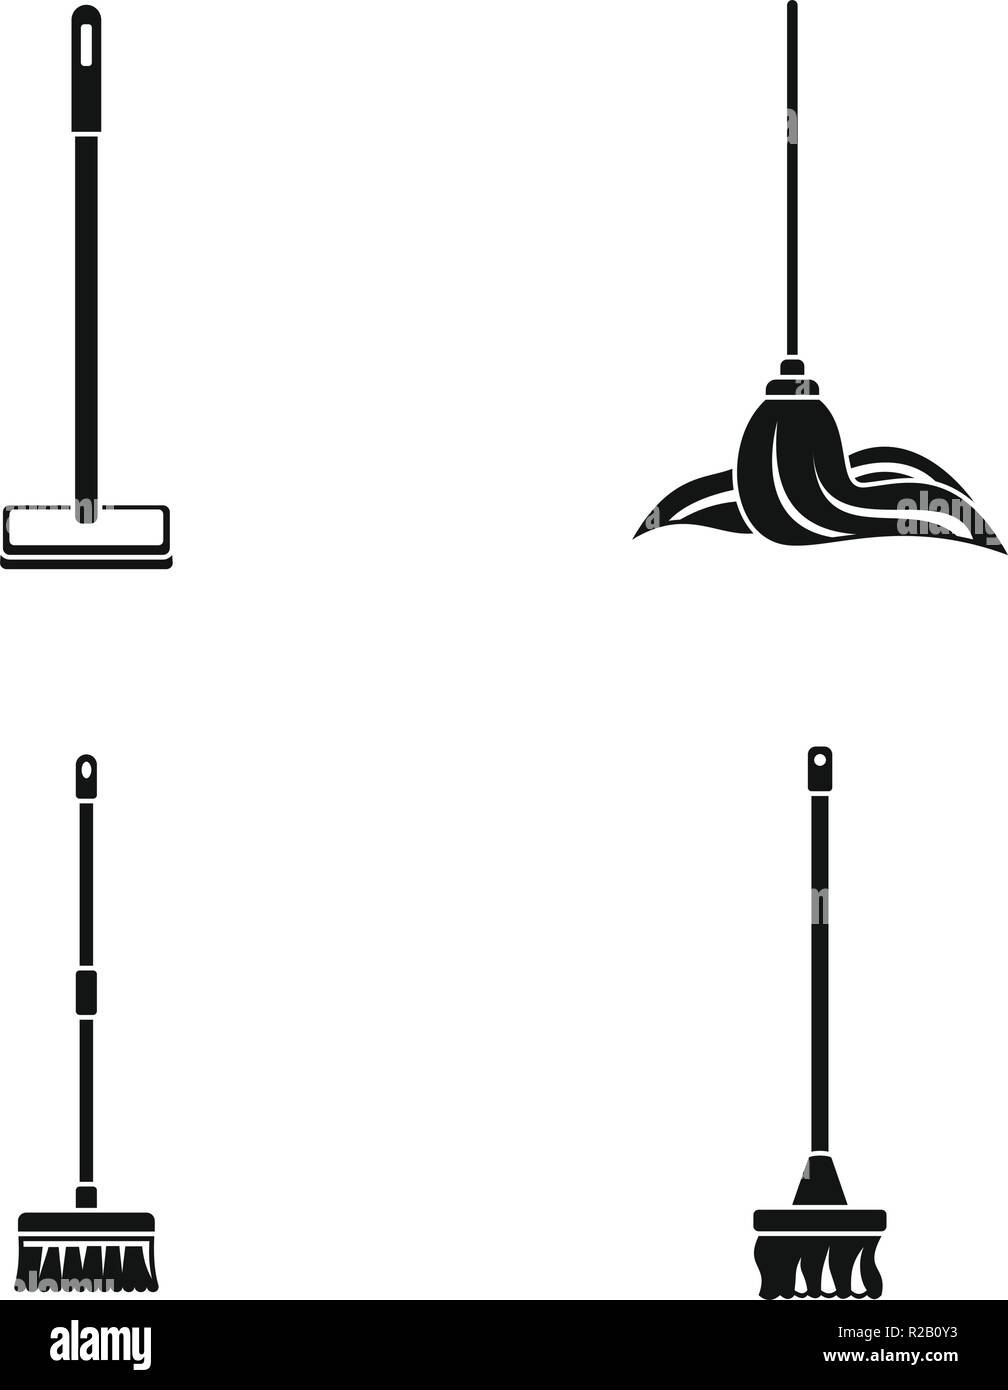 Mop cleaning swab icons set. Simple illustration of 4 mop cleaning swab vector icons for web - Stock Vector